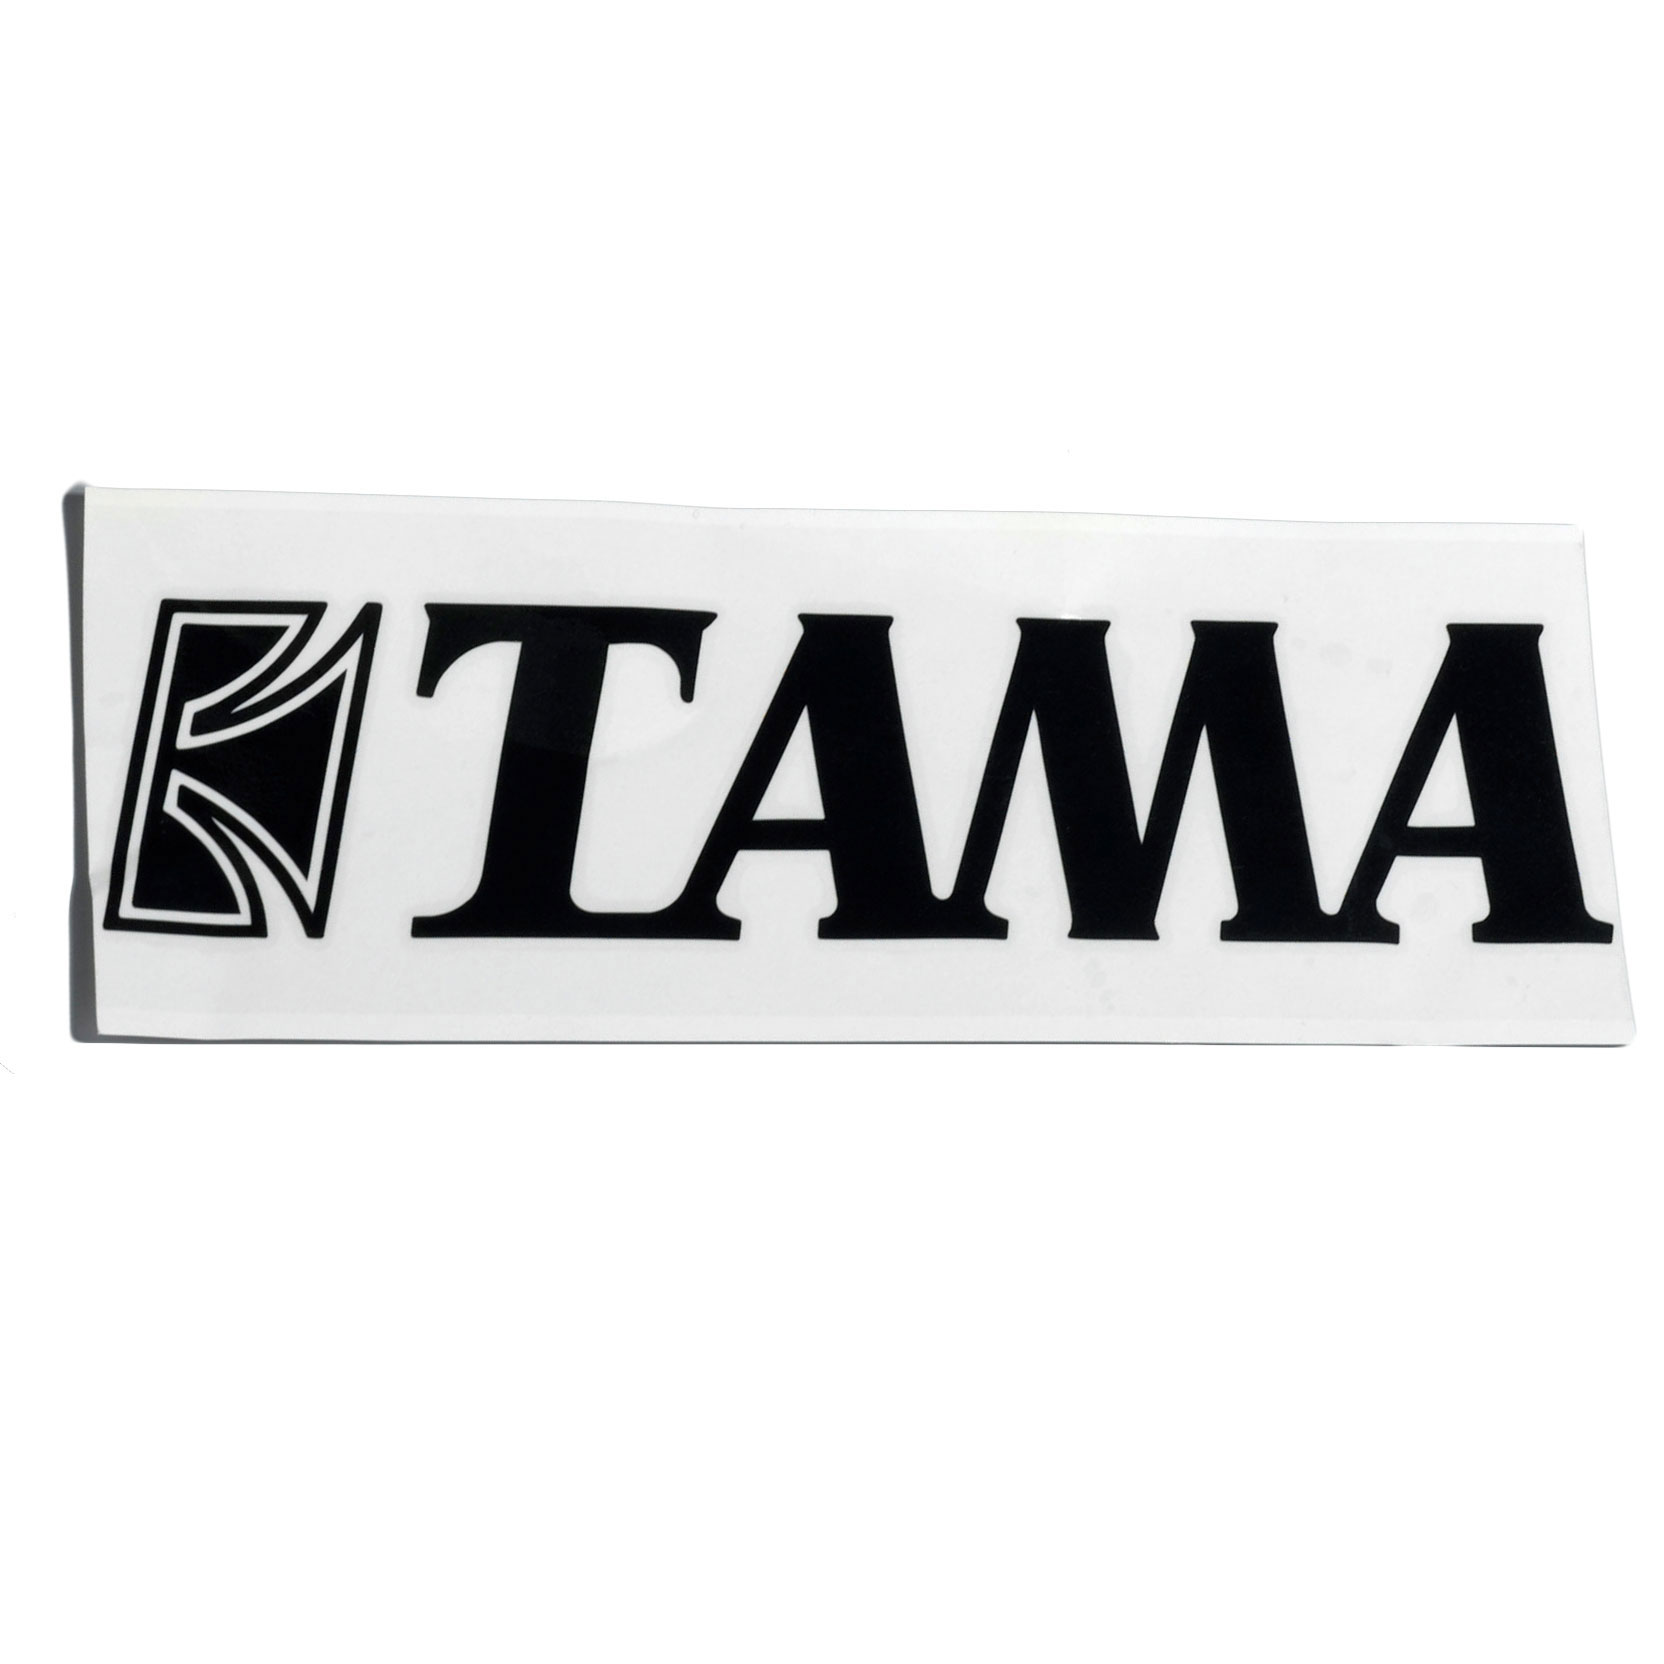 "Tama Black Logo Decal for 24"" - 30"" Bass Drums"